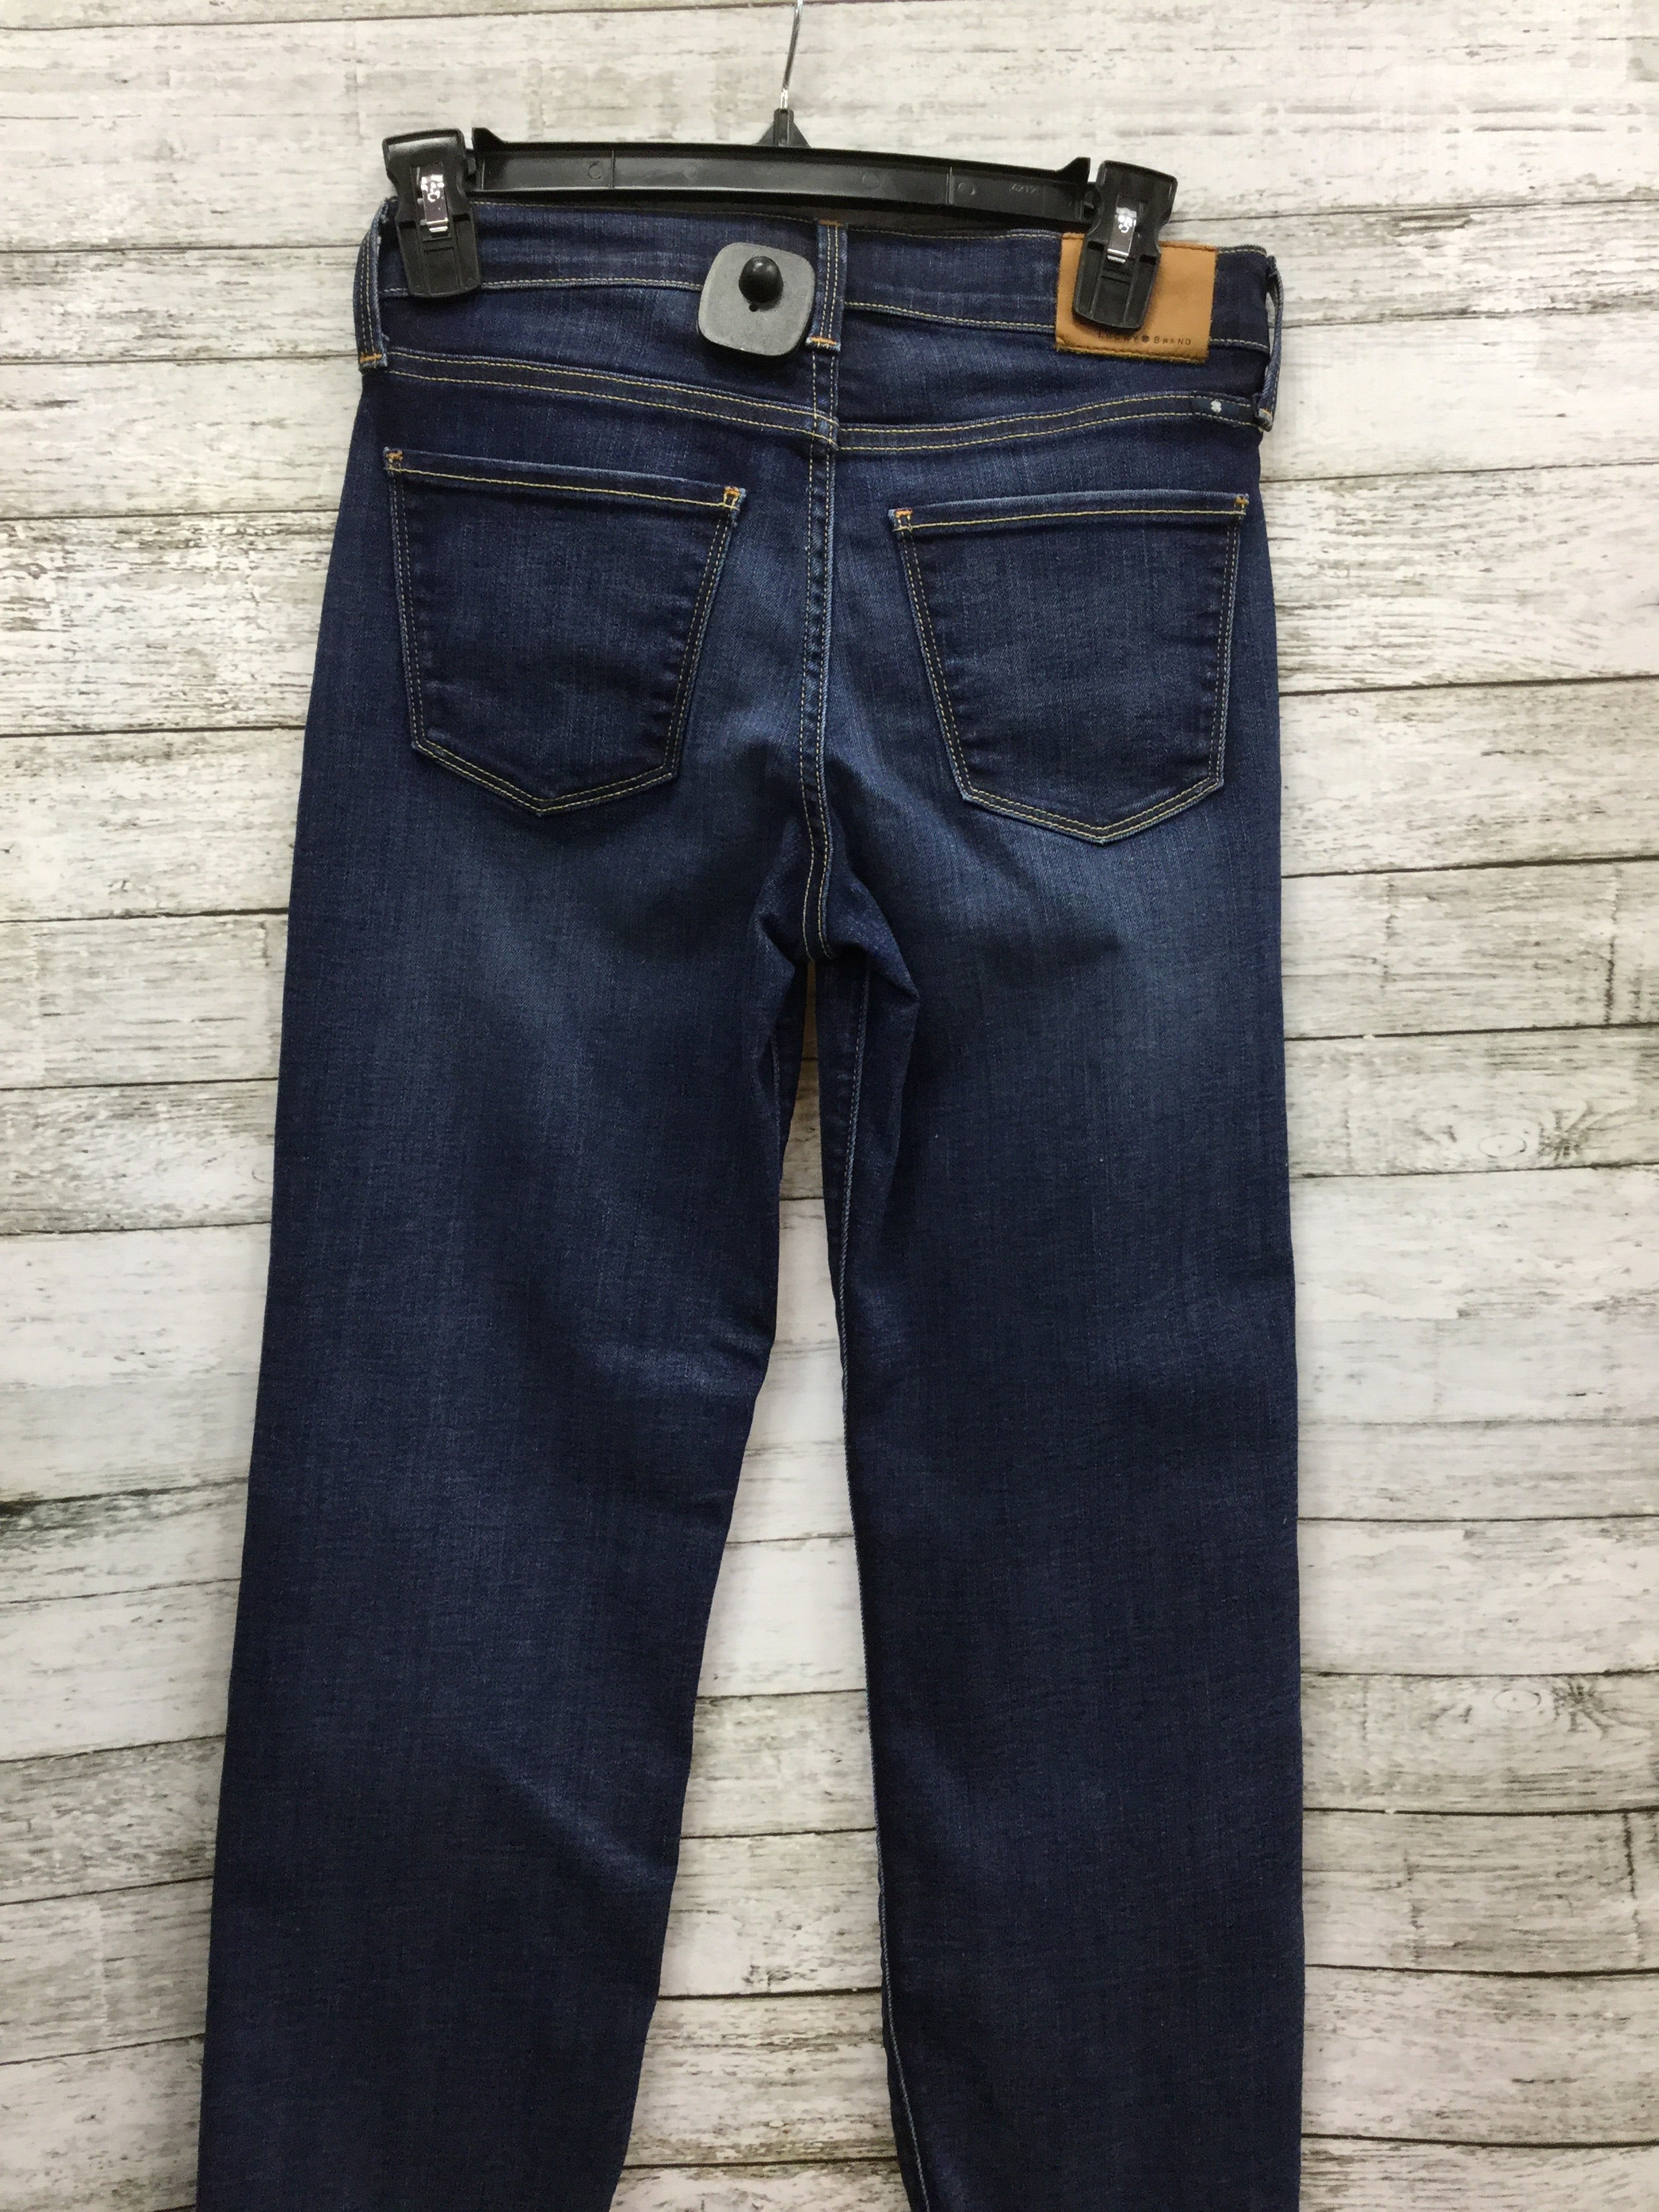 "Photo #4 - BRAND: LUCKY BRAND , STYLE: JEANS , COLOR: DENIM , SIZE: 0 , SKU: 127-4169-24084, , ""BROOKE CROP"" JEANS."